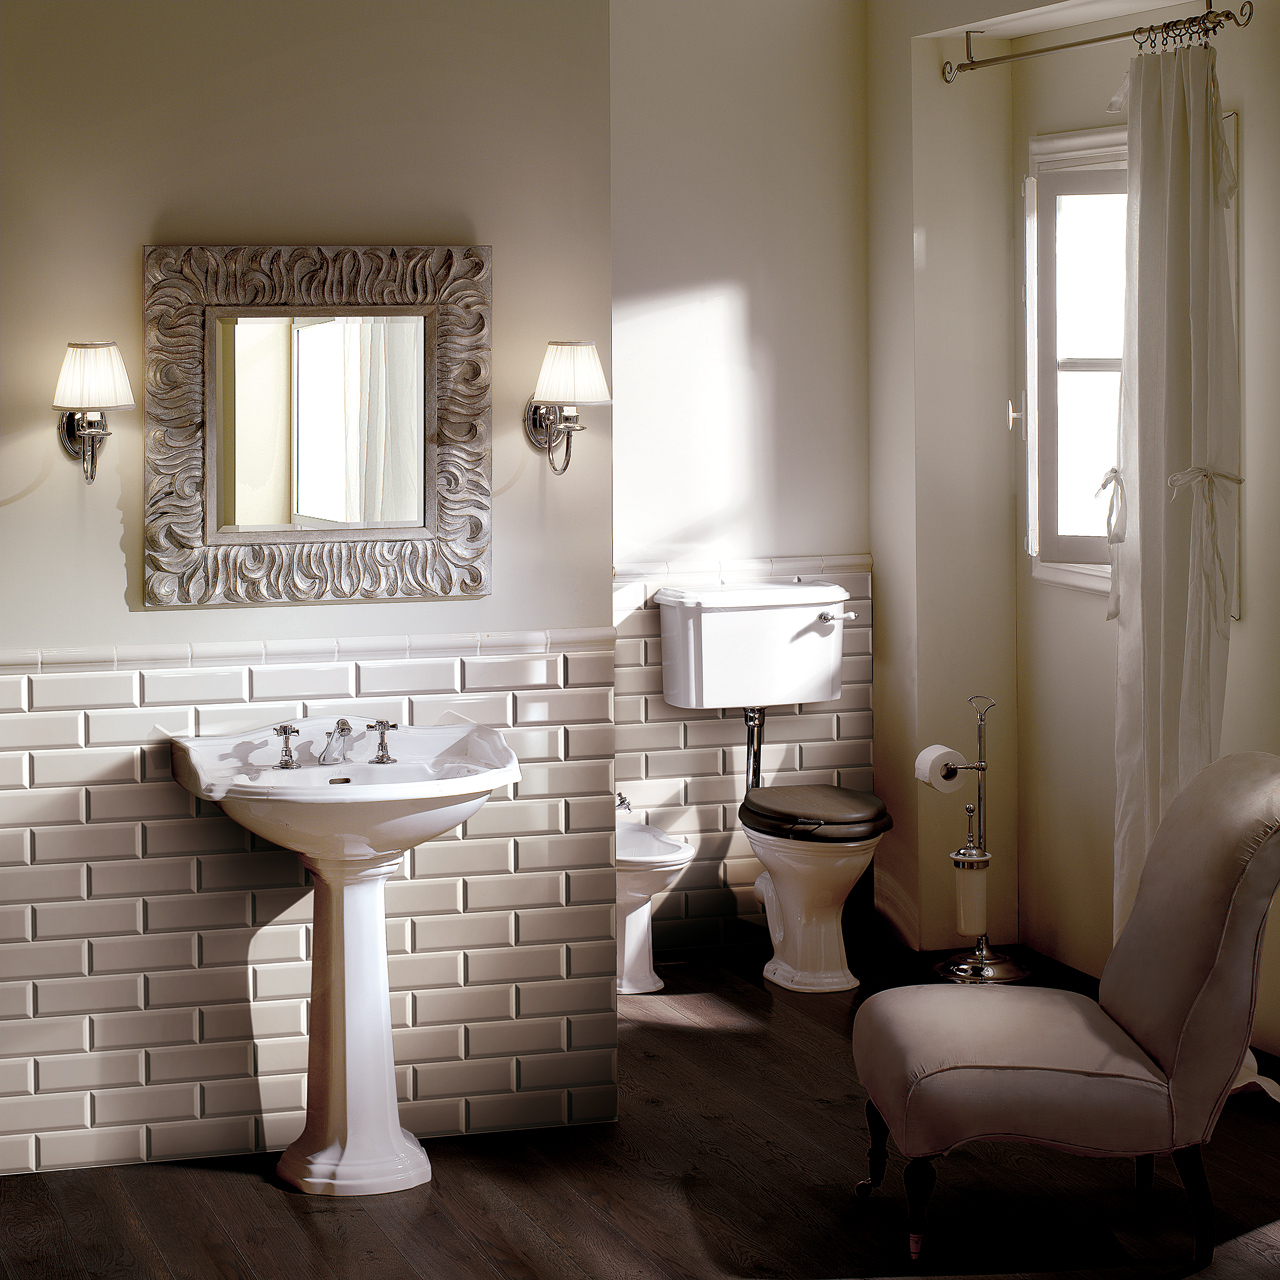 Classic Bathrooms: Devon & Devon: Ambientazione-Brick